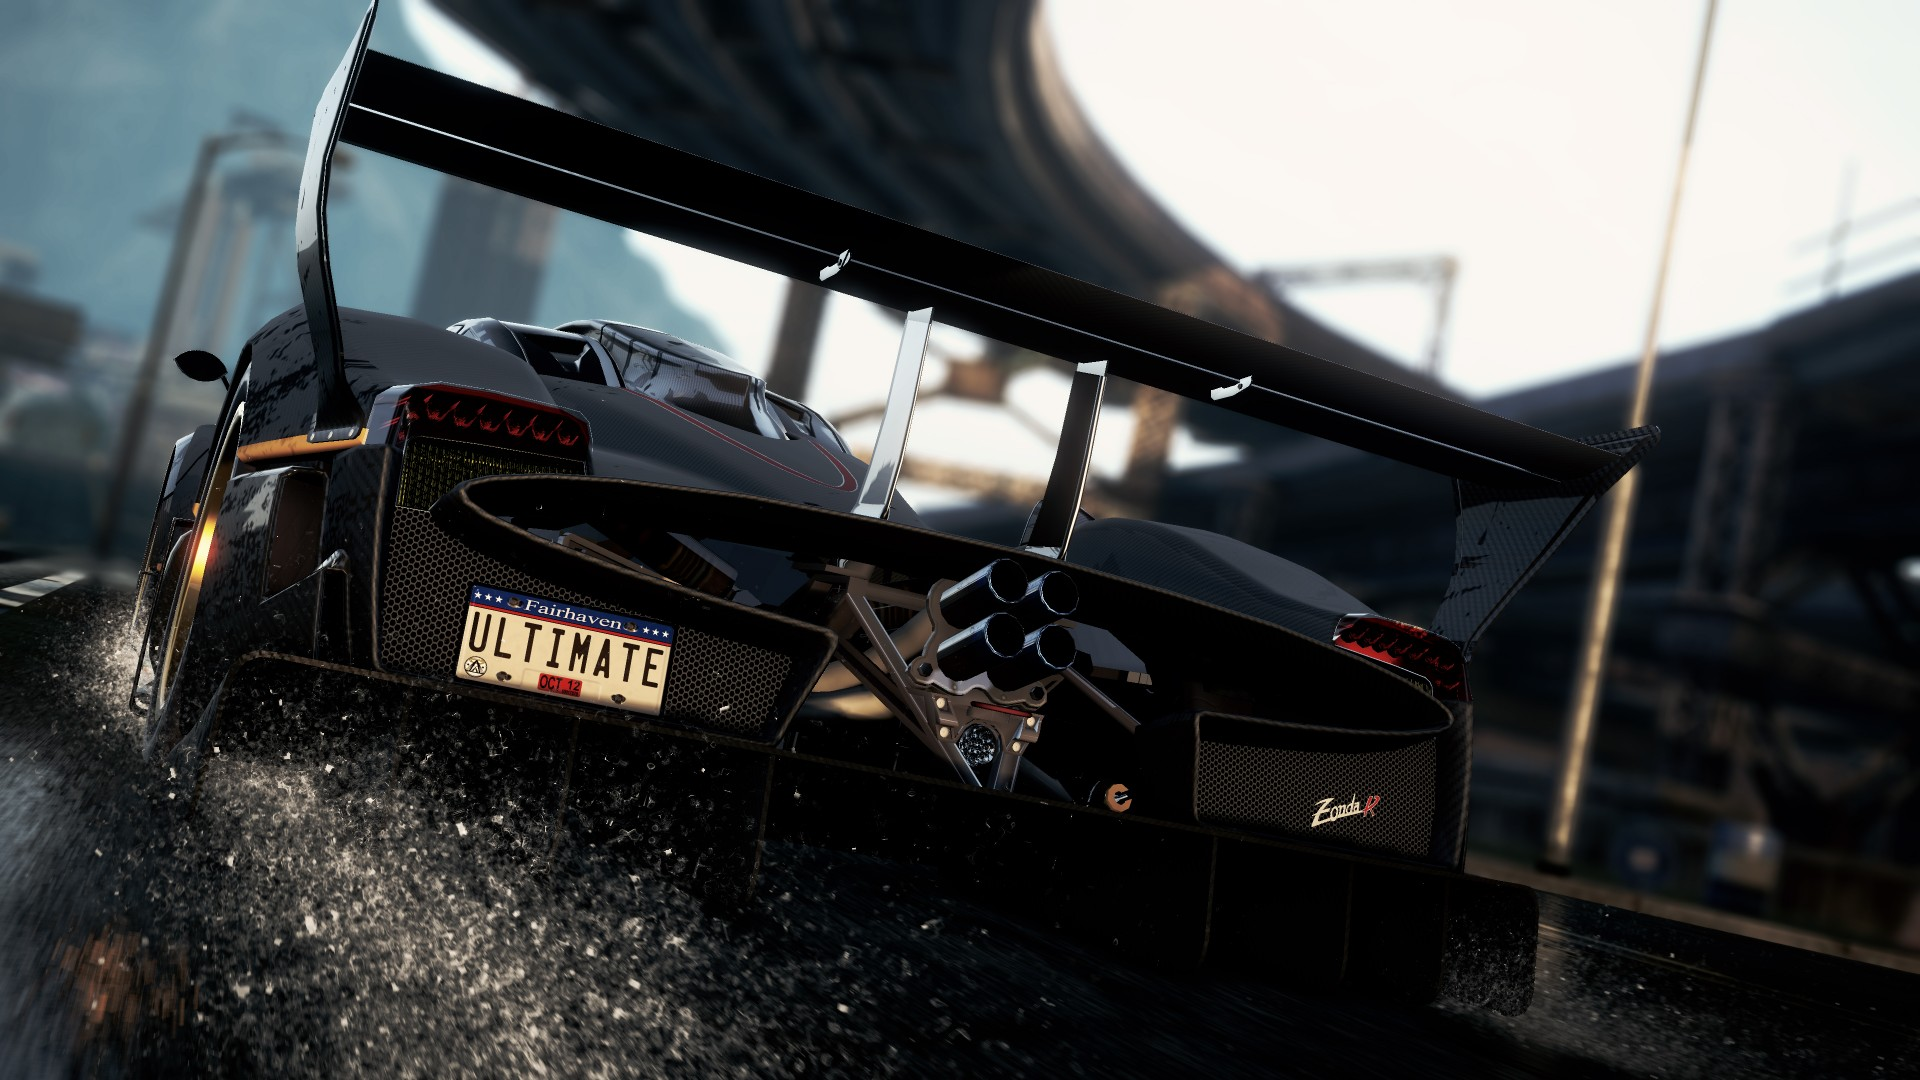 Pagani Zonda R Need for Speed Most Wanted 1080p 1920x1080 pixel 1920x1080